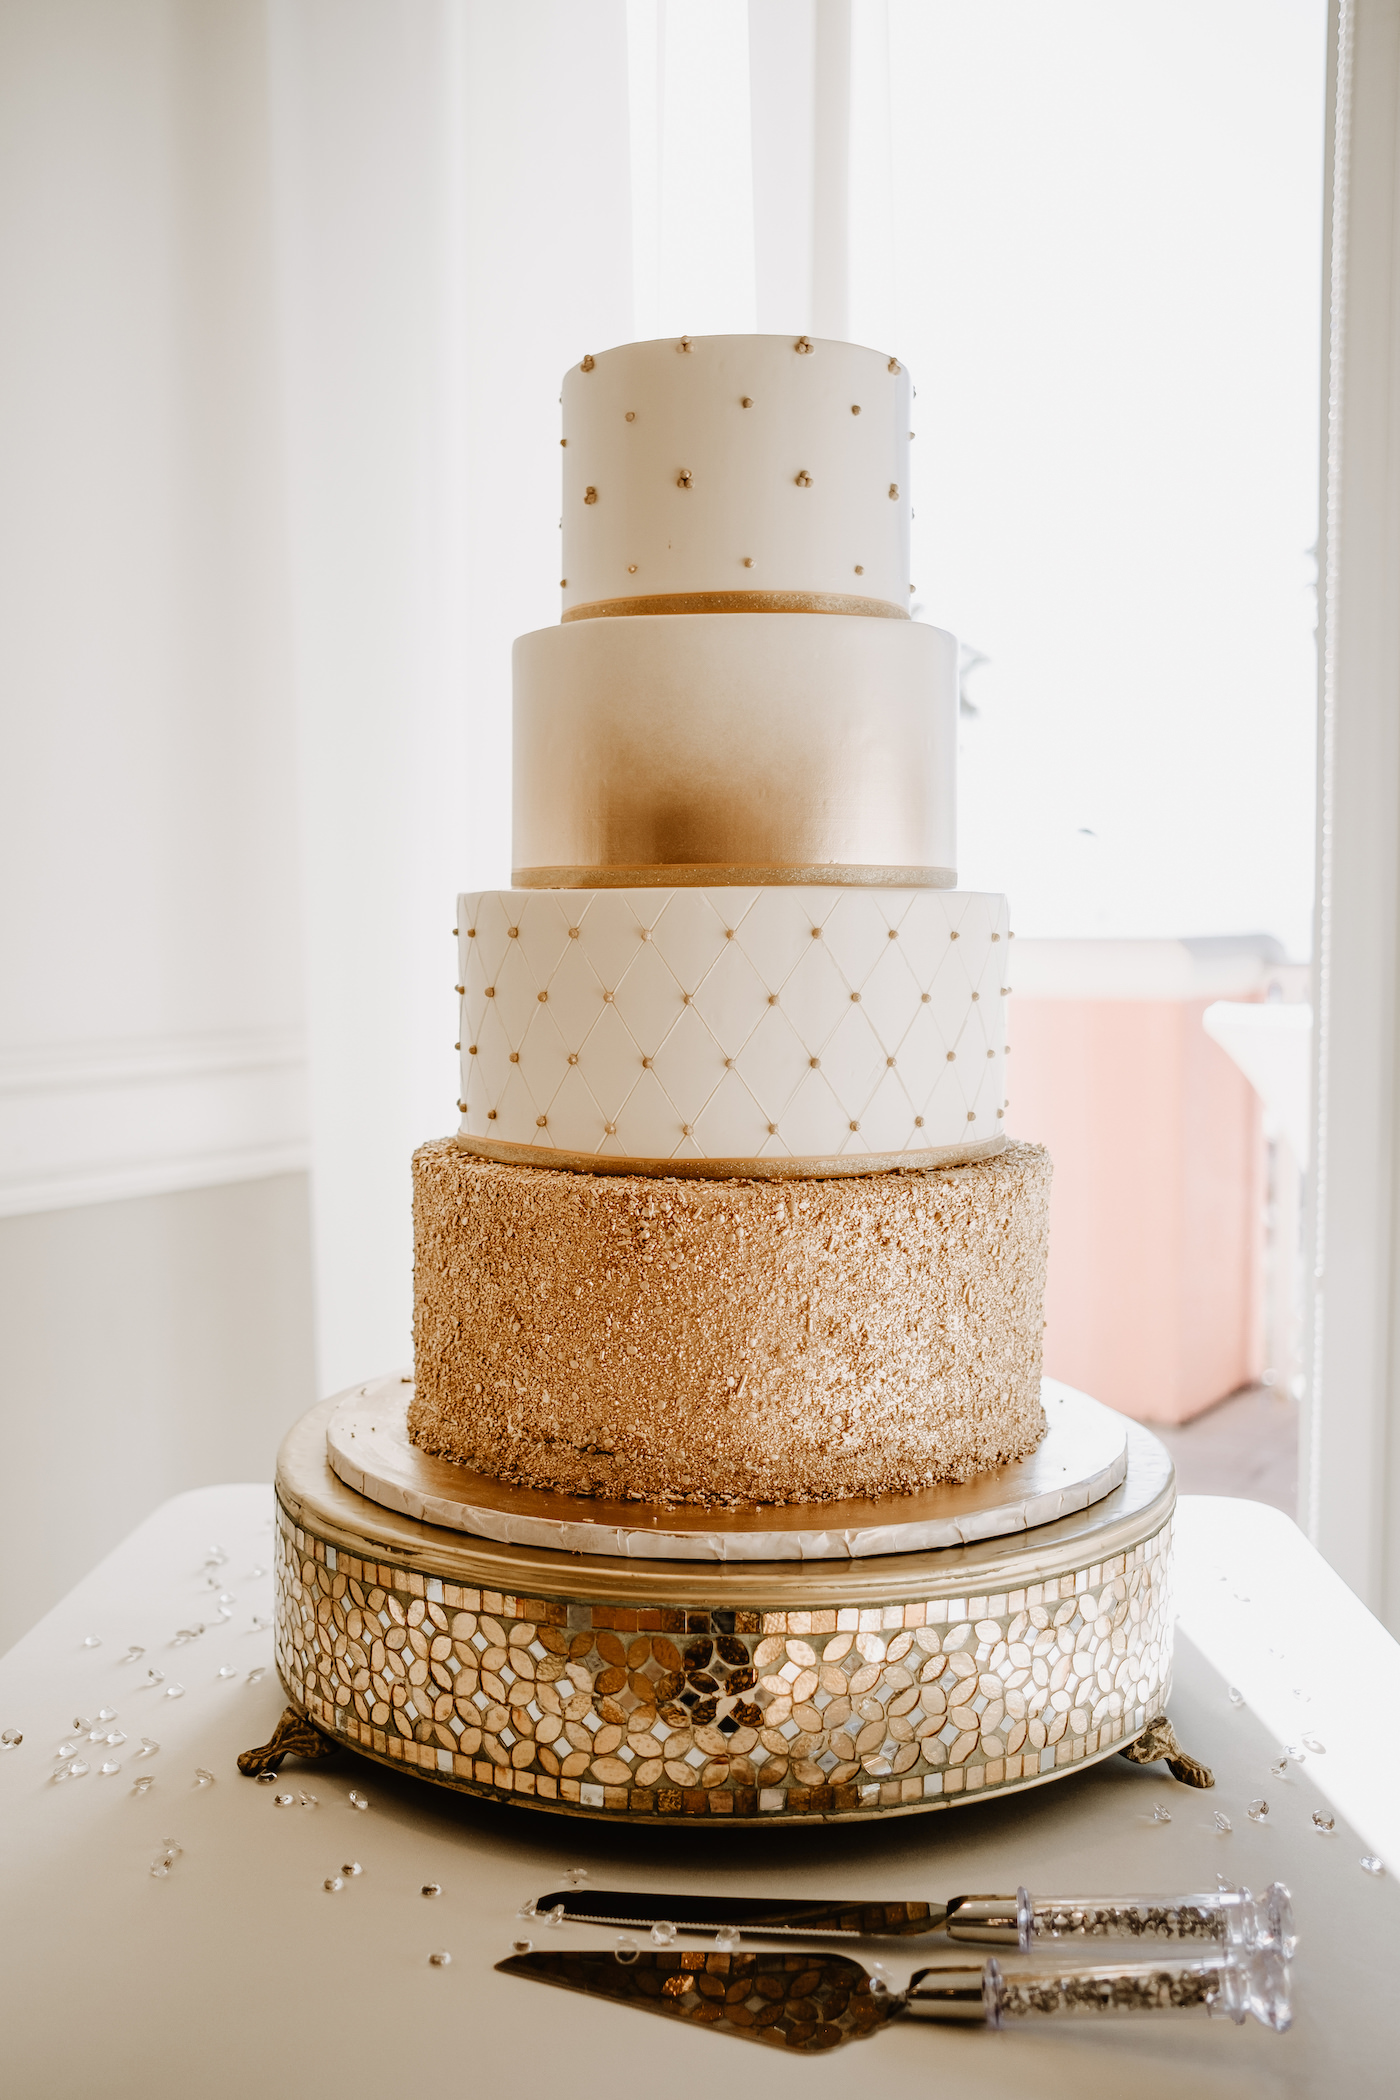 Round Four Tier Wedding Cake with Metallic Gold Embellishments on Ornate Gold Stand   Tampa Cake Bakery The Artistic Whisk